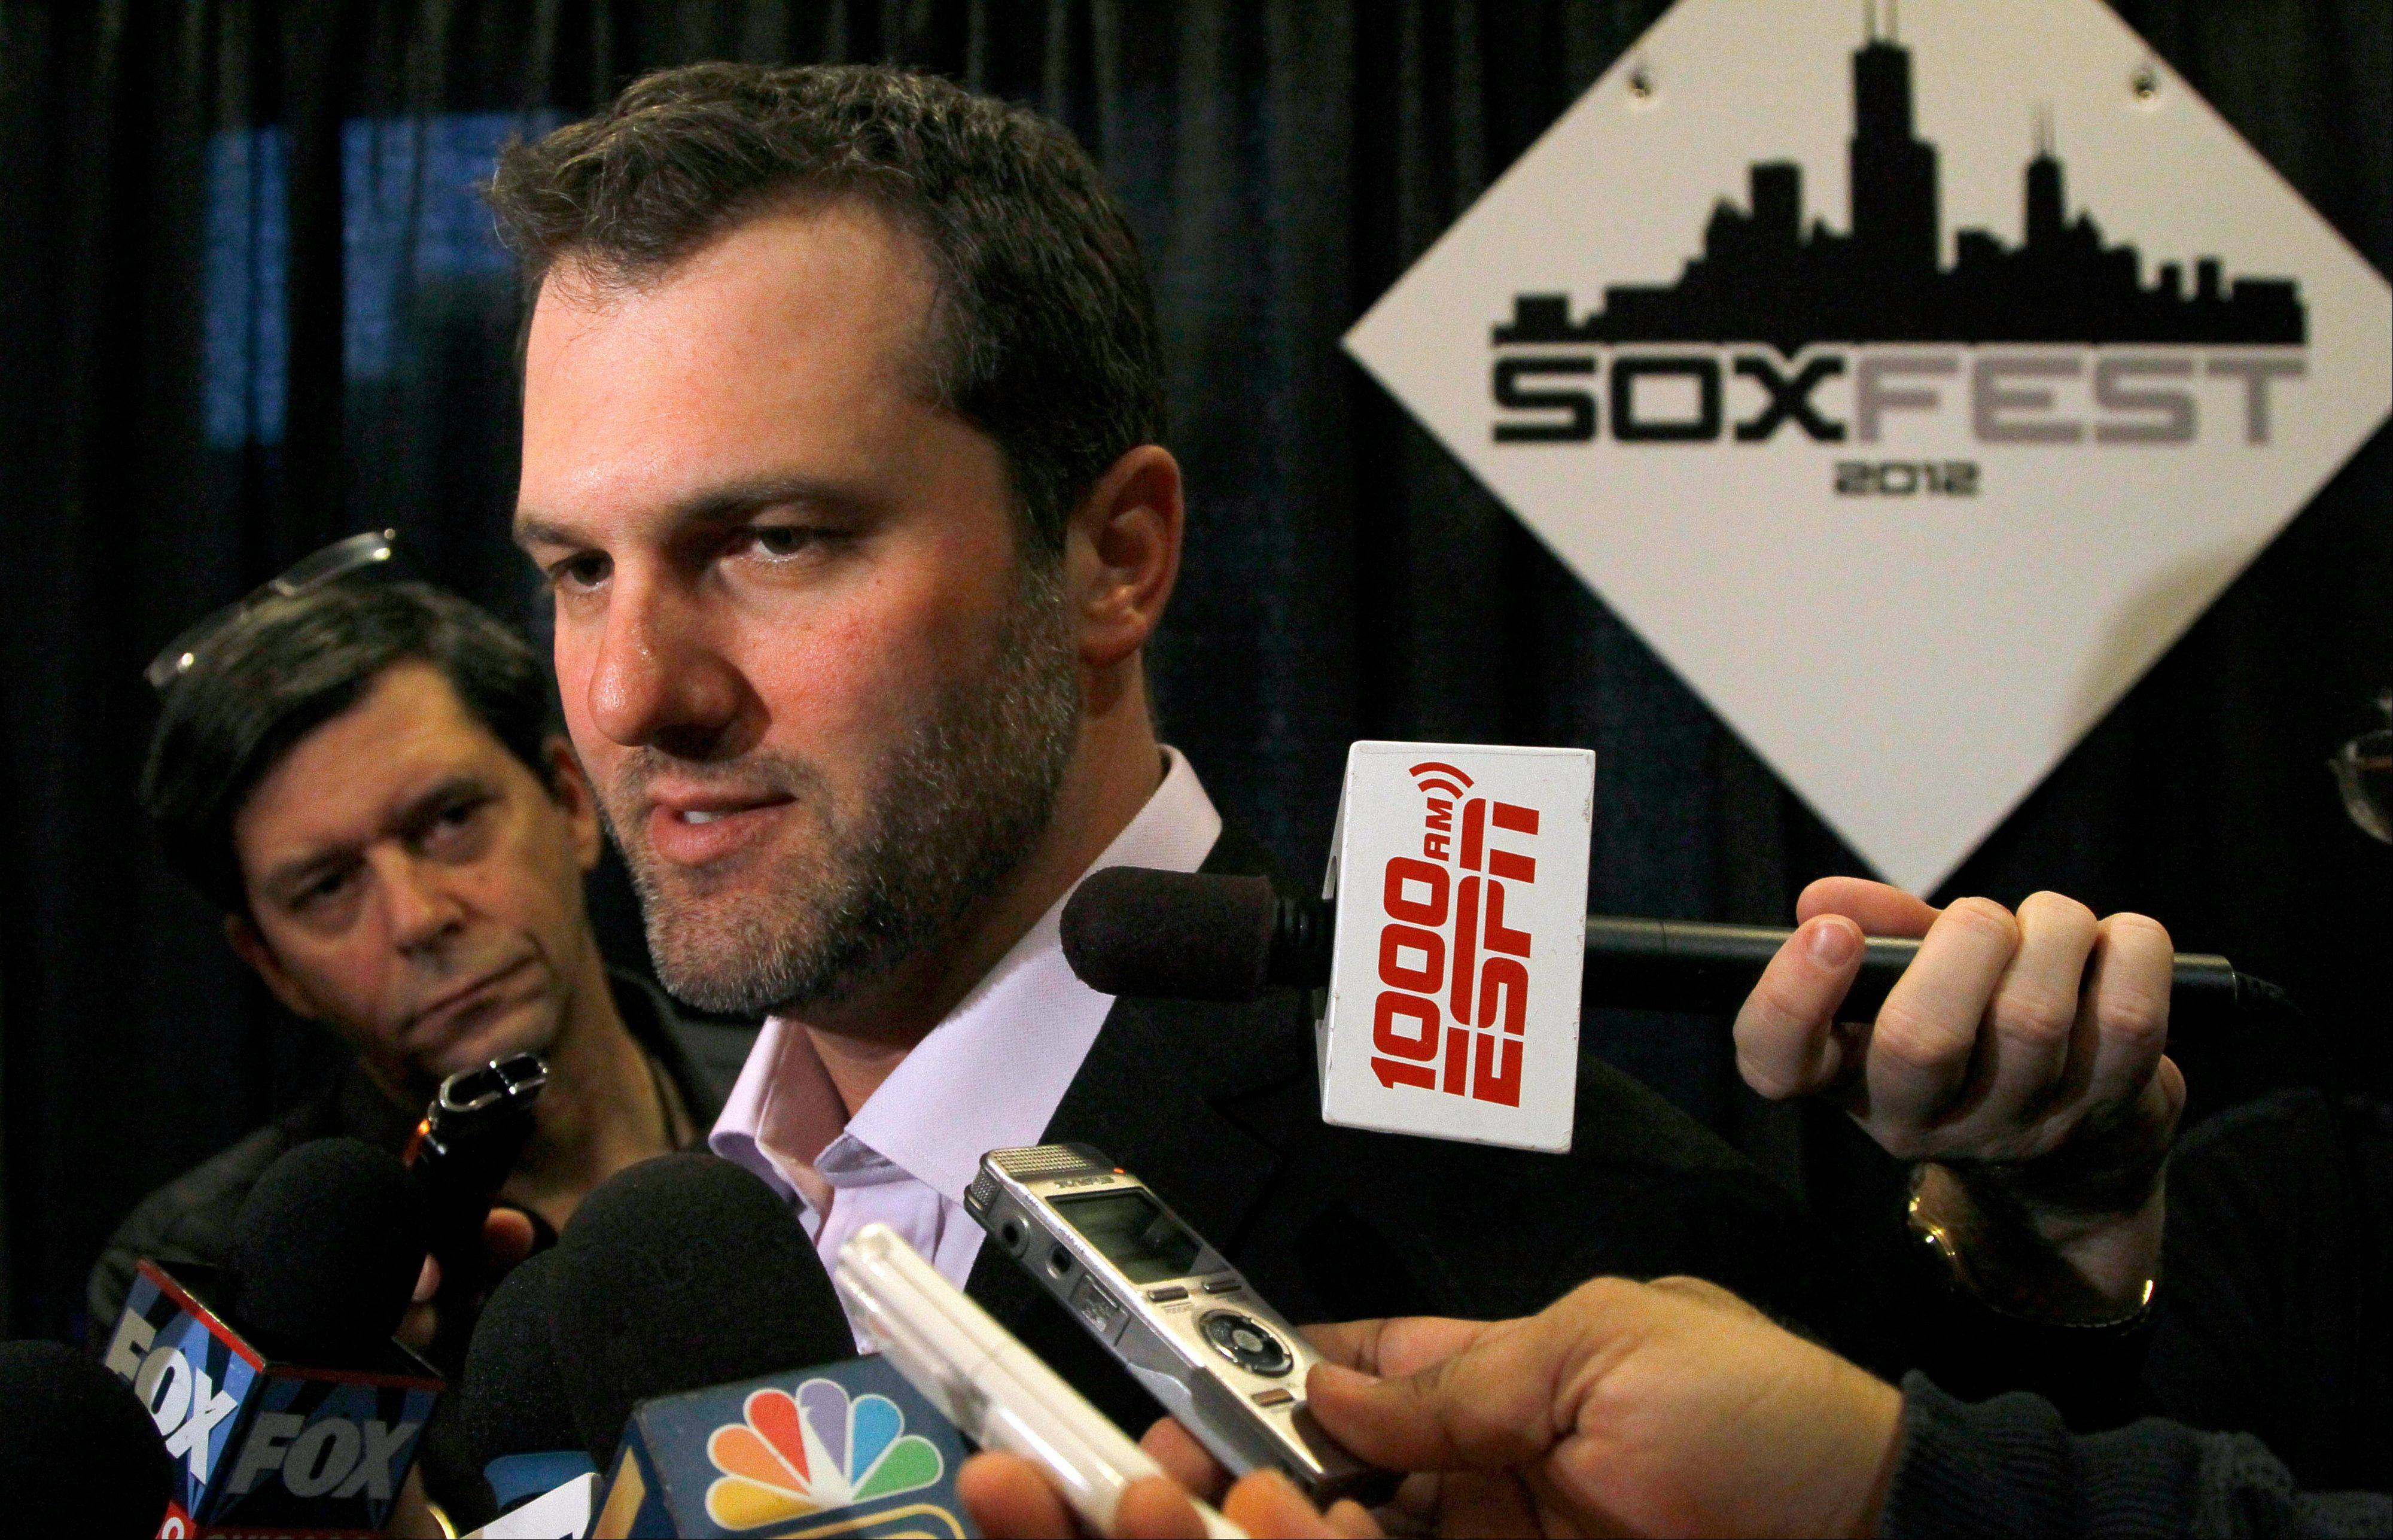 Chicago White Sox baseball captain and first baseman Paul Konerko talks with reporters during the White Sox Fan Fest Friday, Jan. 27, 2012, in Chicago.